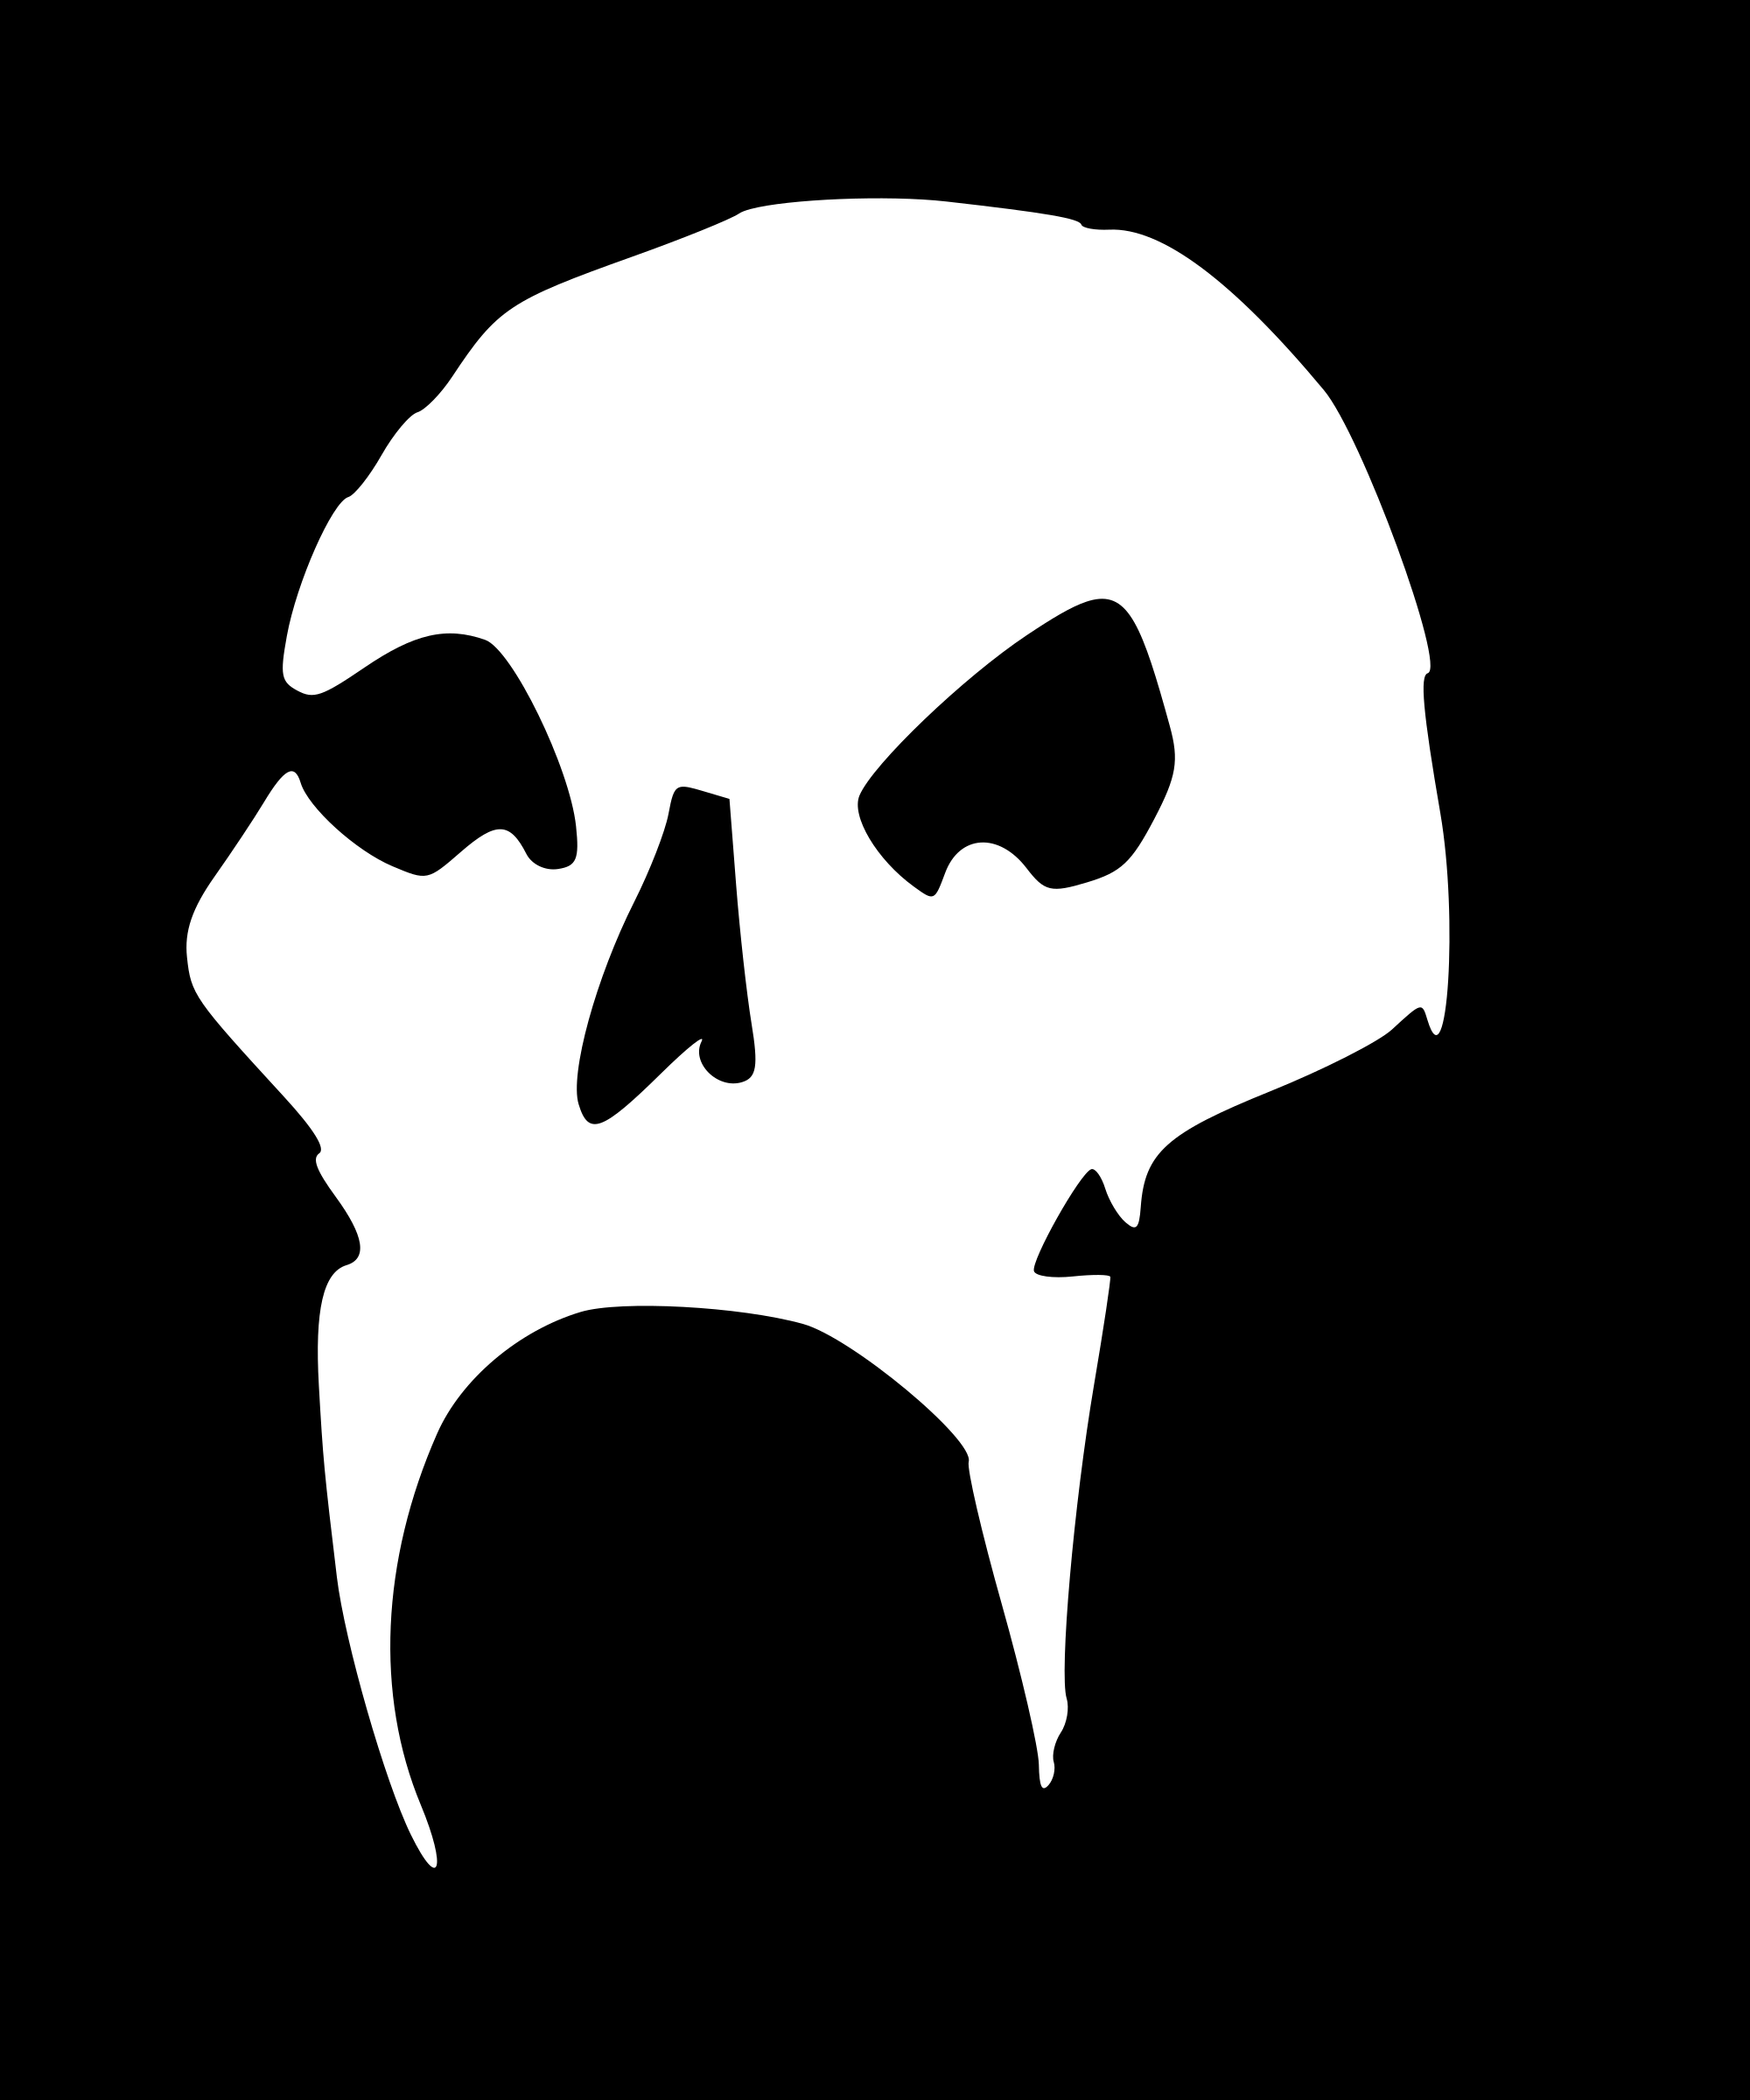 Strange skull by liftarn